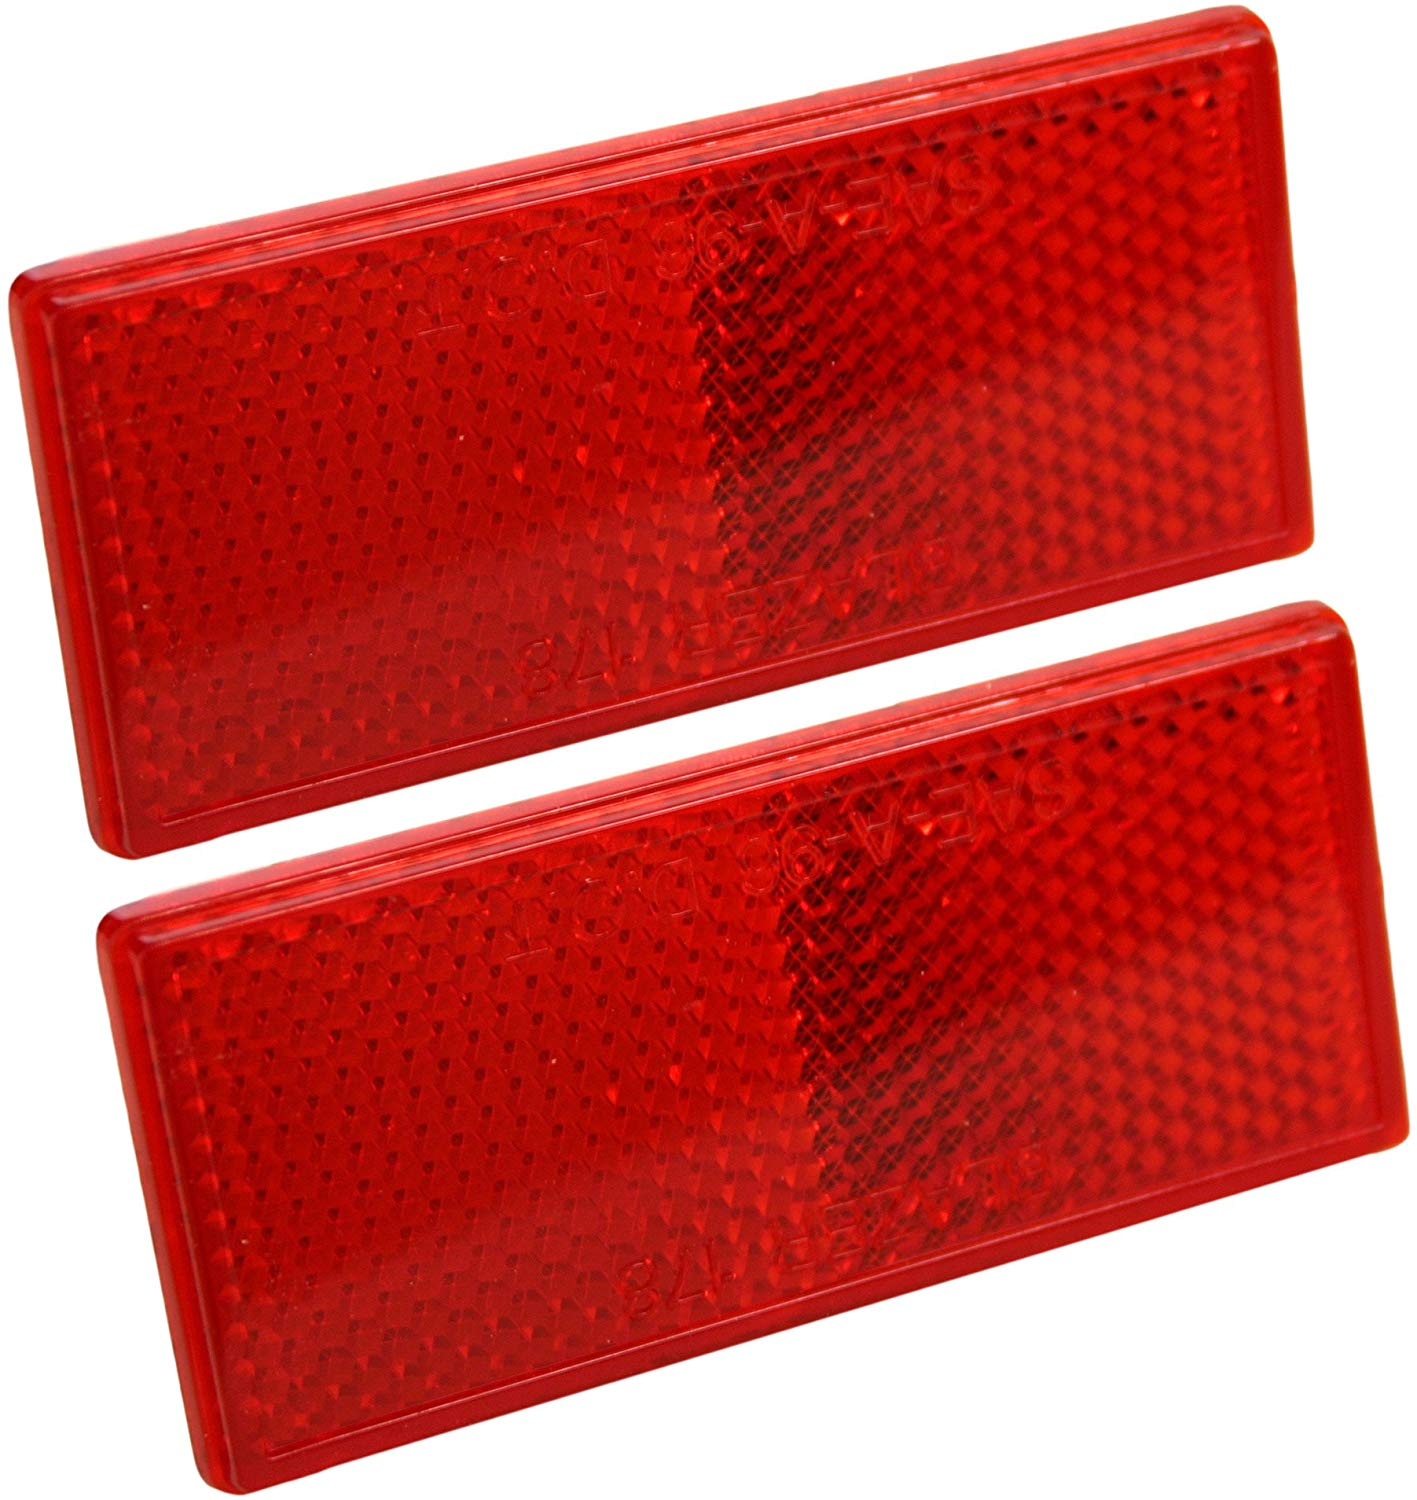 Reflectors for Trailer